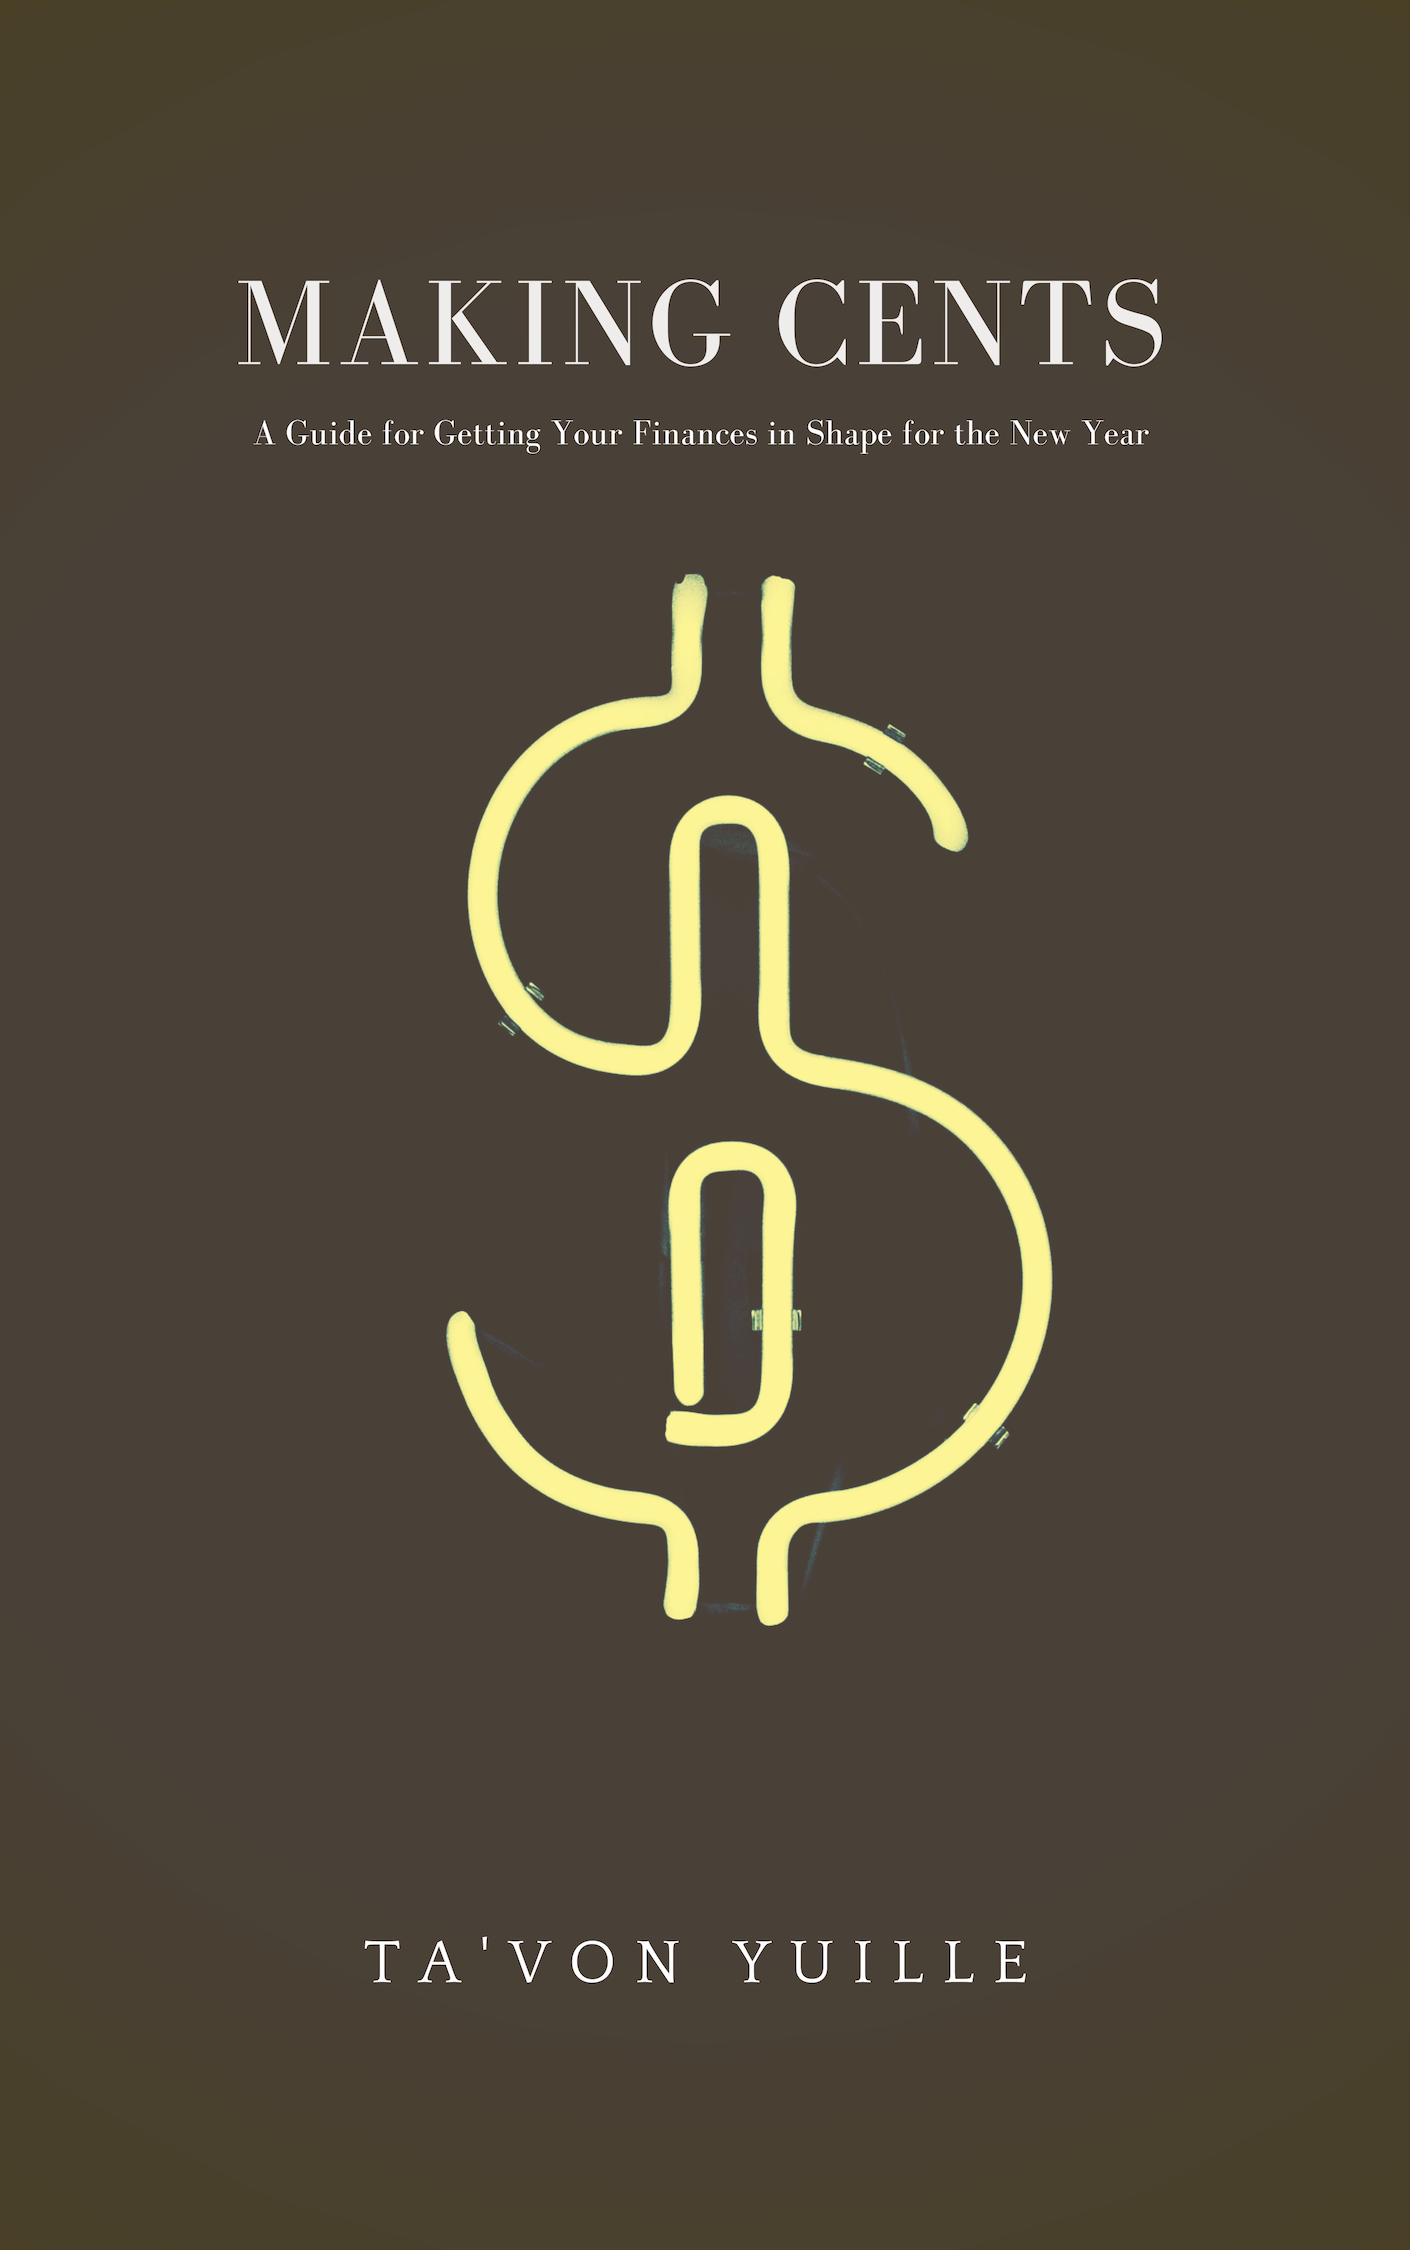 """- After finishing up your Christmas shopping, get a headstart on preparing your finances for the new year. Grab """"Making Cents"""" now and start getting things in order for 2019. """"Making Cents"""" includes concepts, tips, downloadable templates, and action steps at the end of each section to guide you through getting your finances together and setting yourself up to meet your goals. Let's make 2019 the year that you change your financial situation for the better!"""